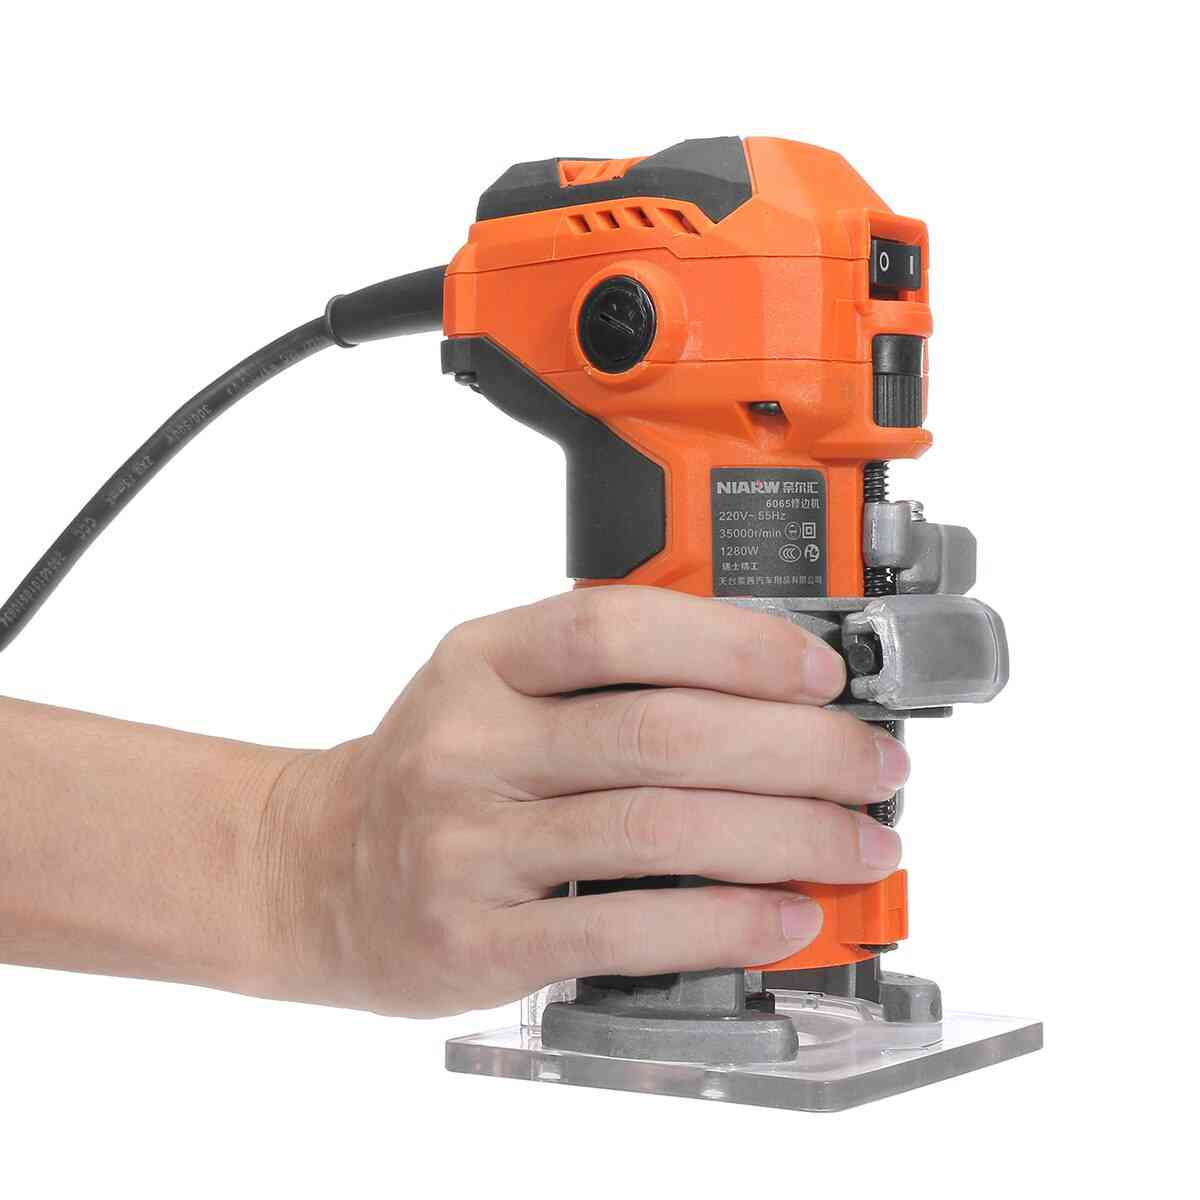 Wood Trimmer Electro Tools Router Wood Milling Machine For Joiners Renovator